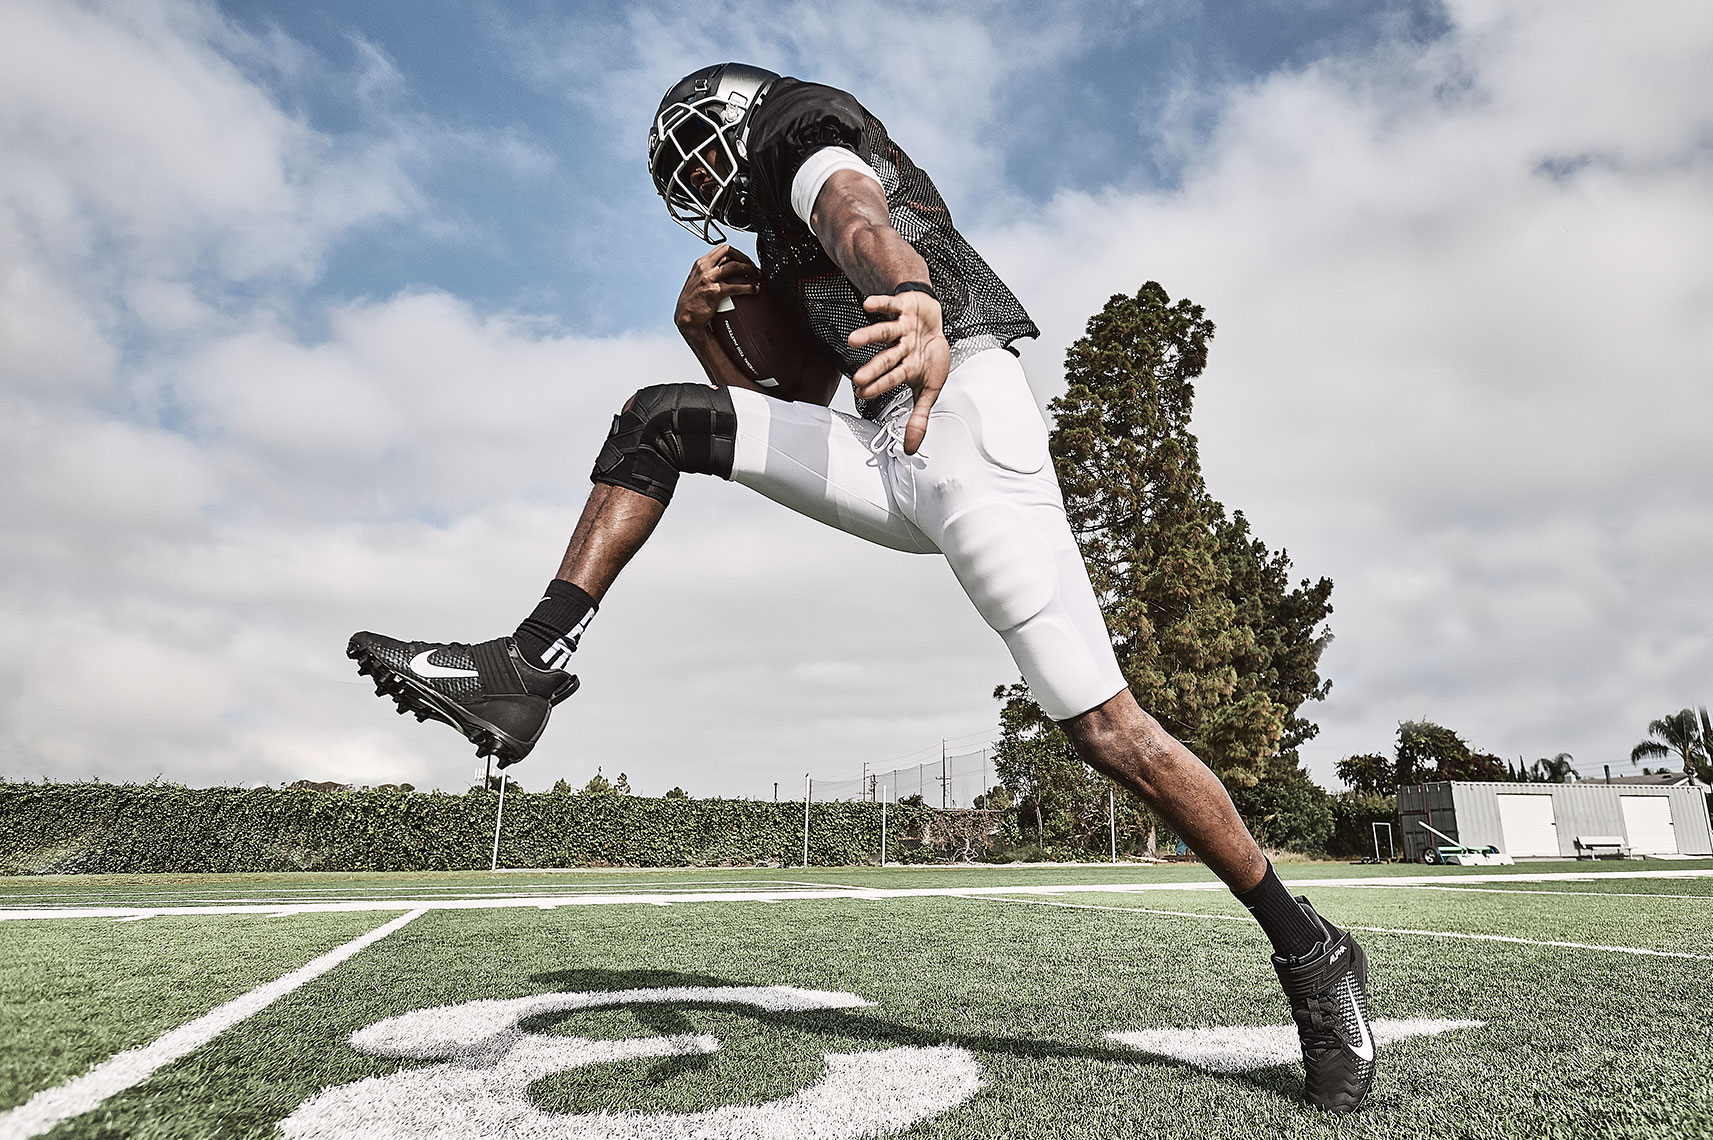 zamst-sports-photographer-orange-county-california-football